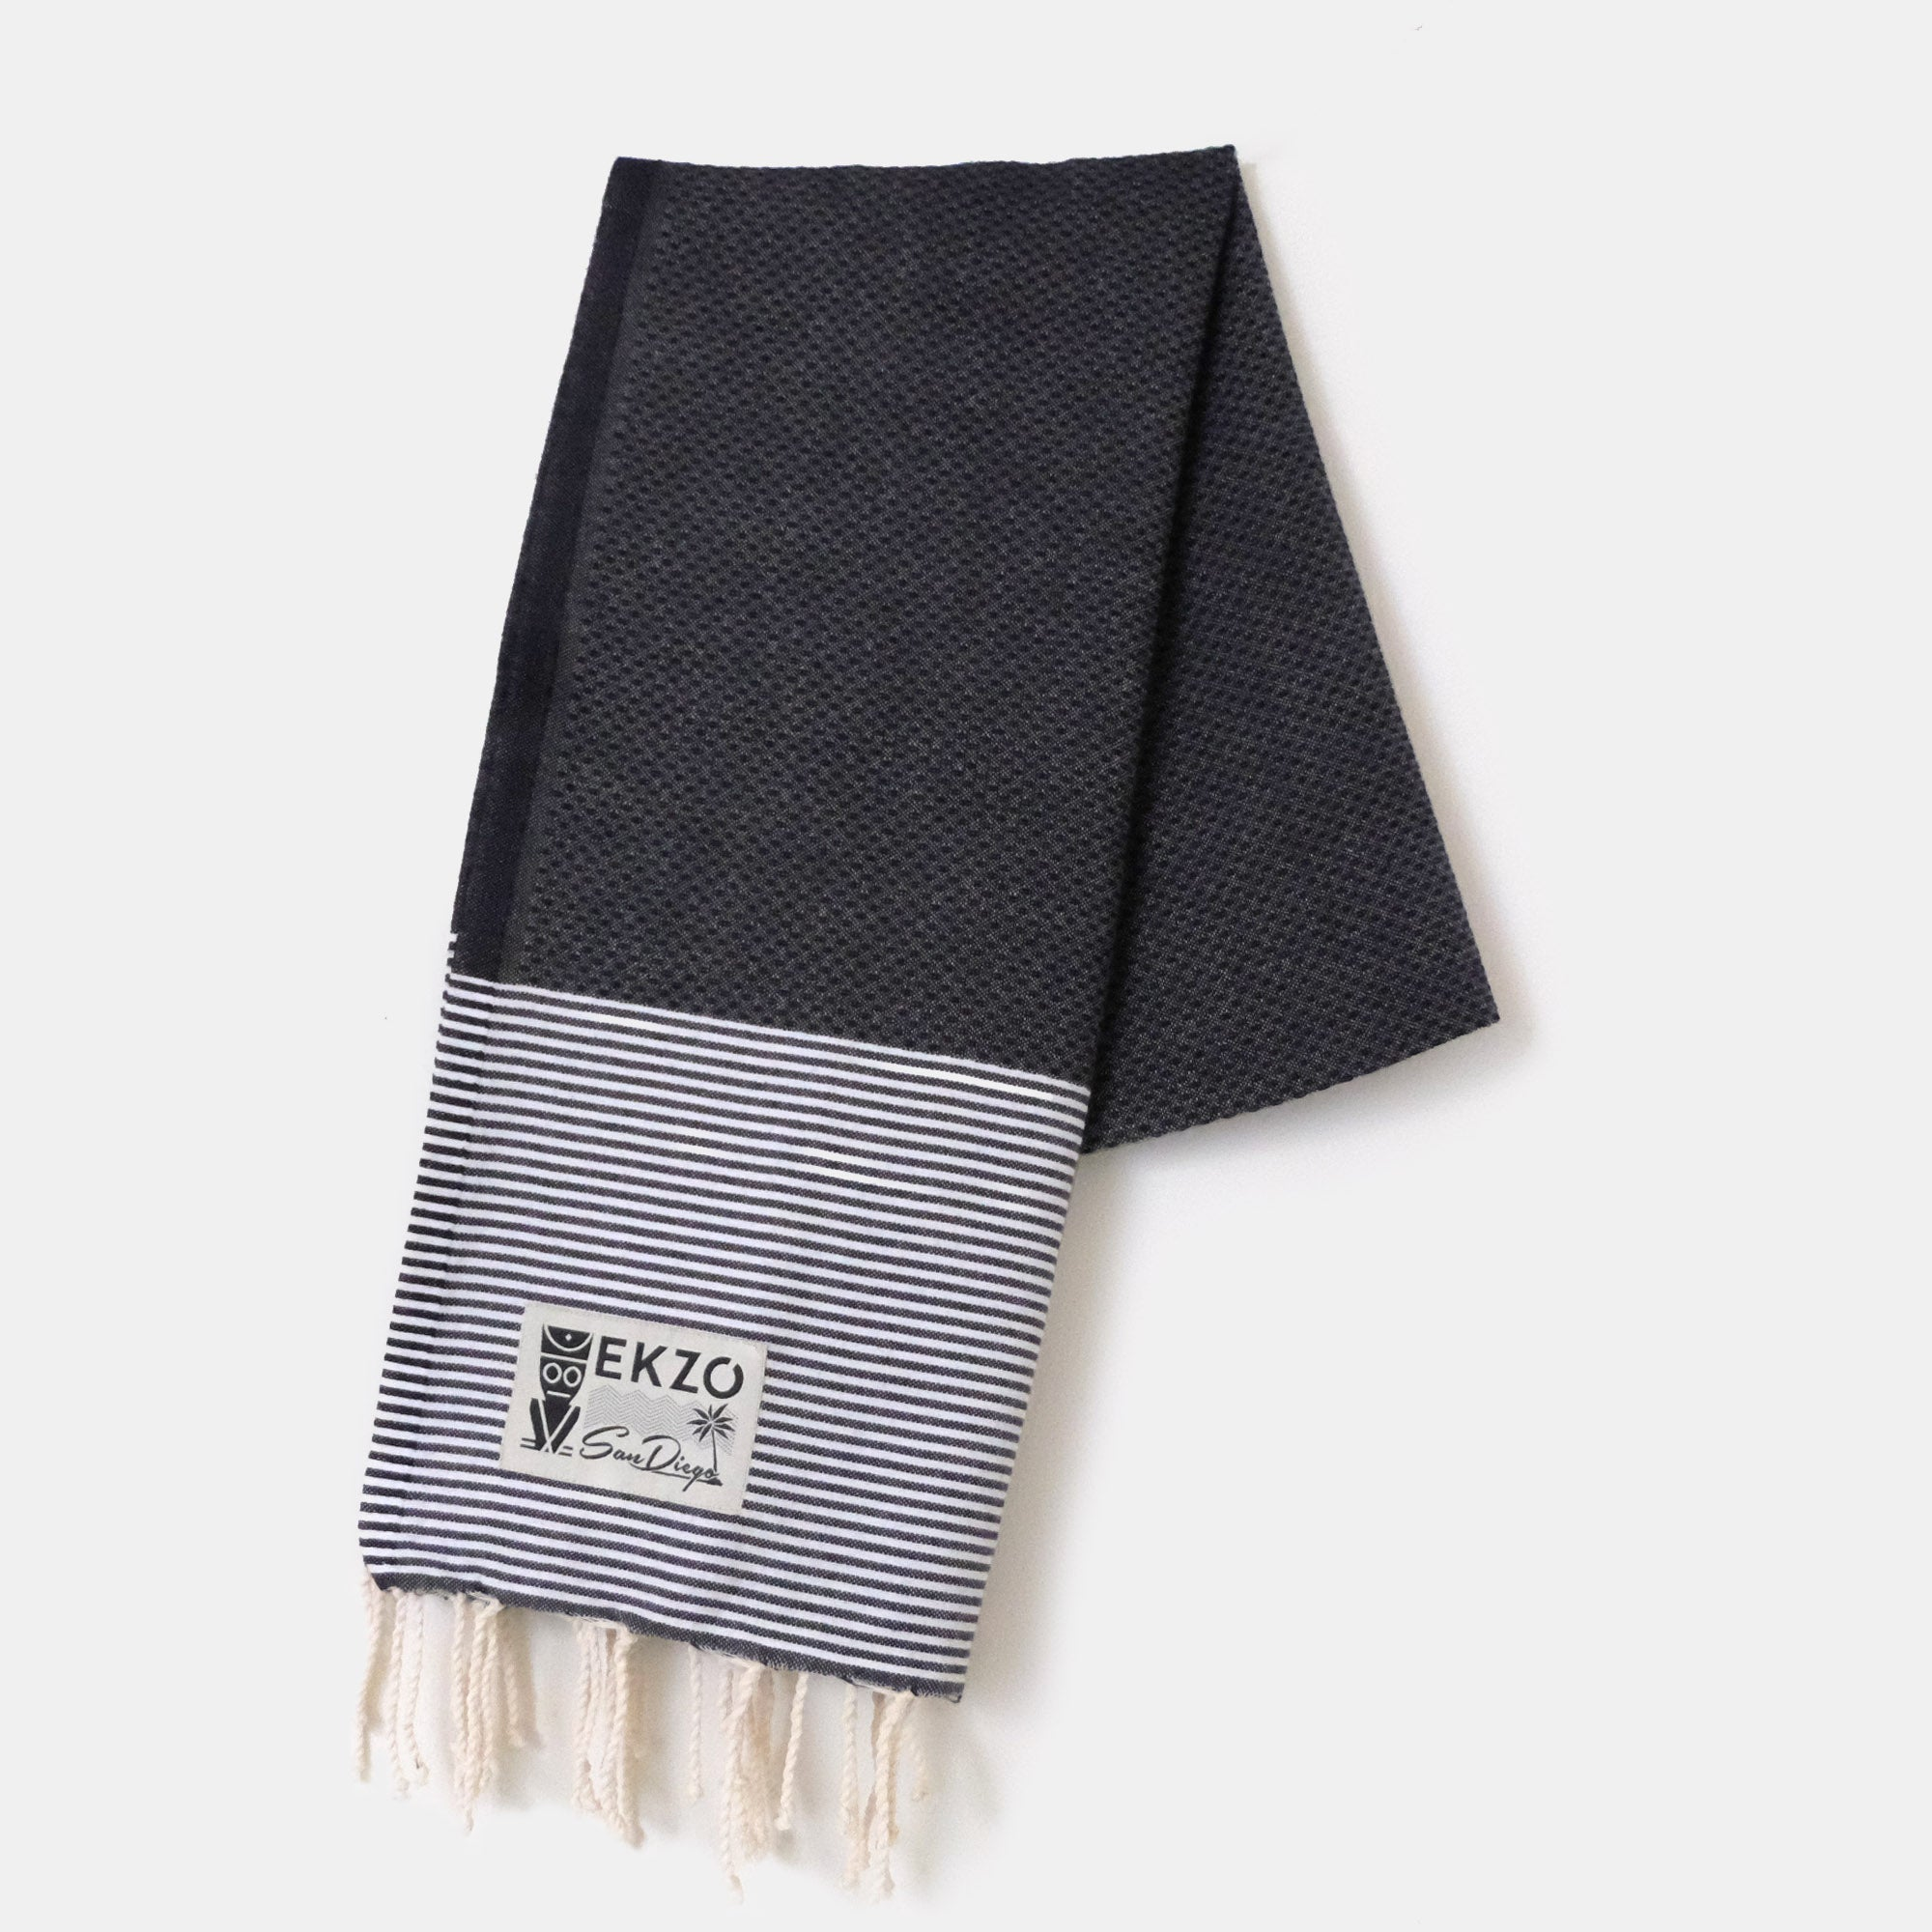 Honeycomb Midnight - Beach Towel - EKZO